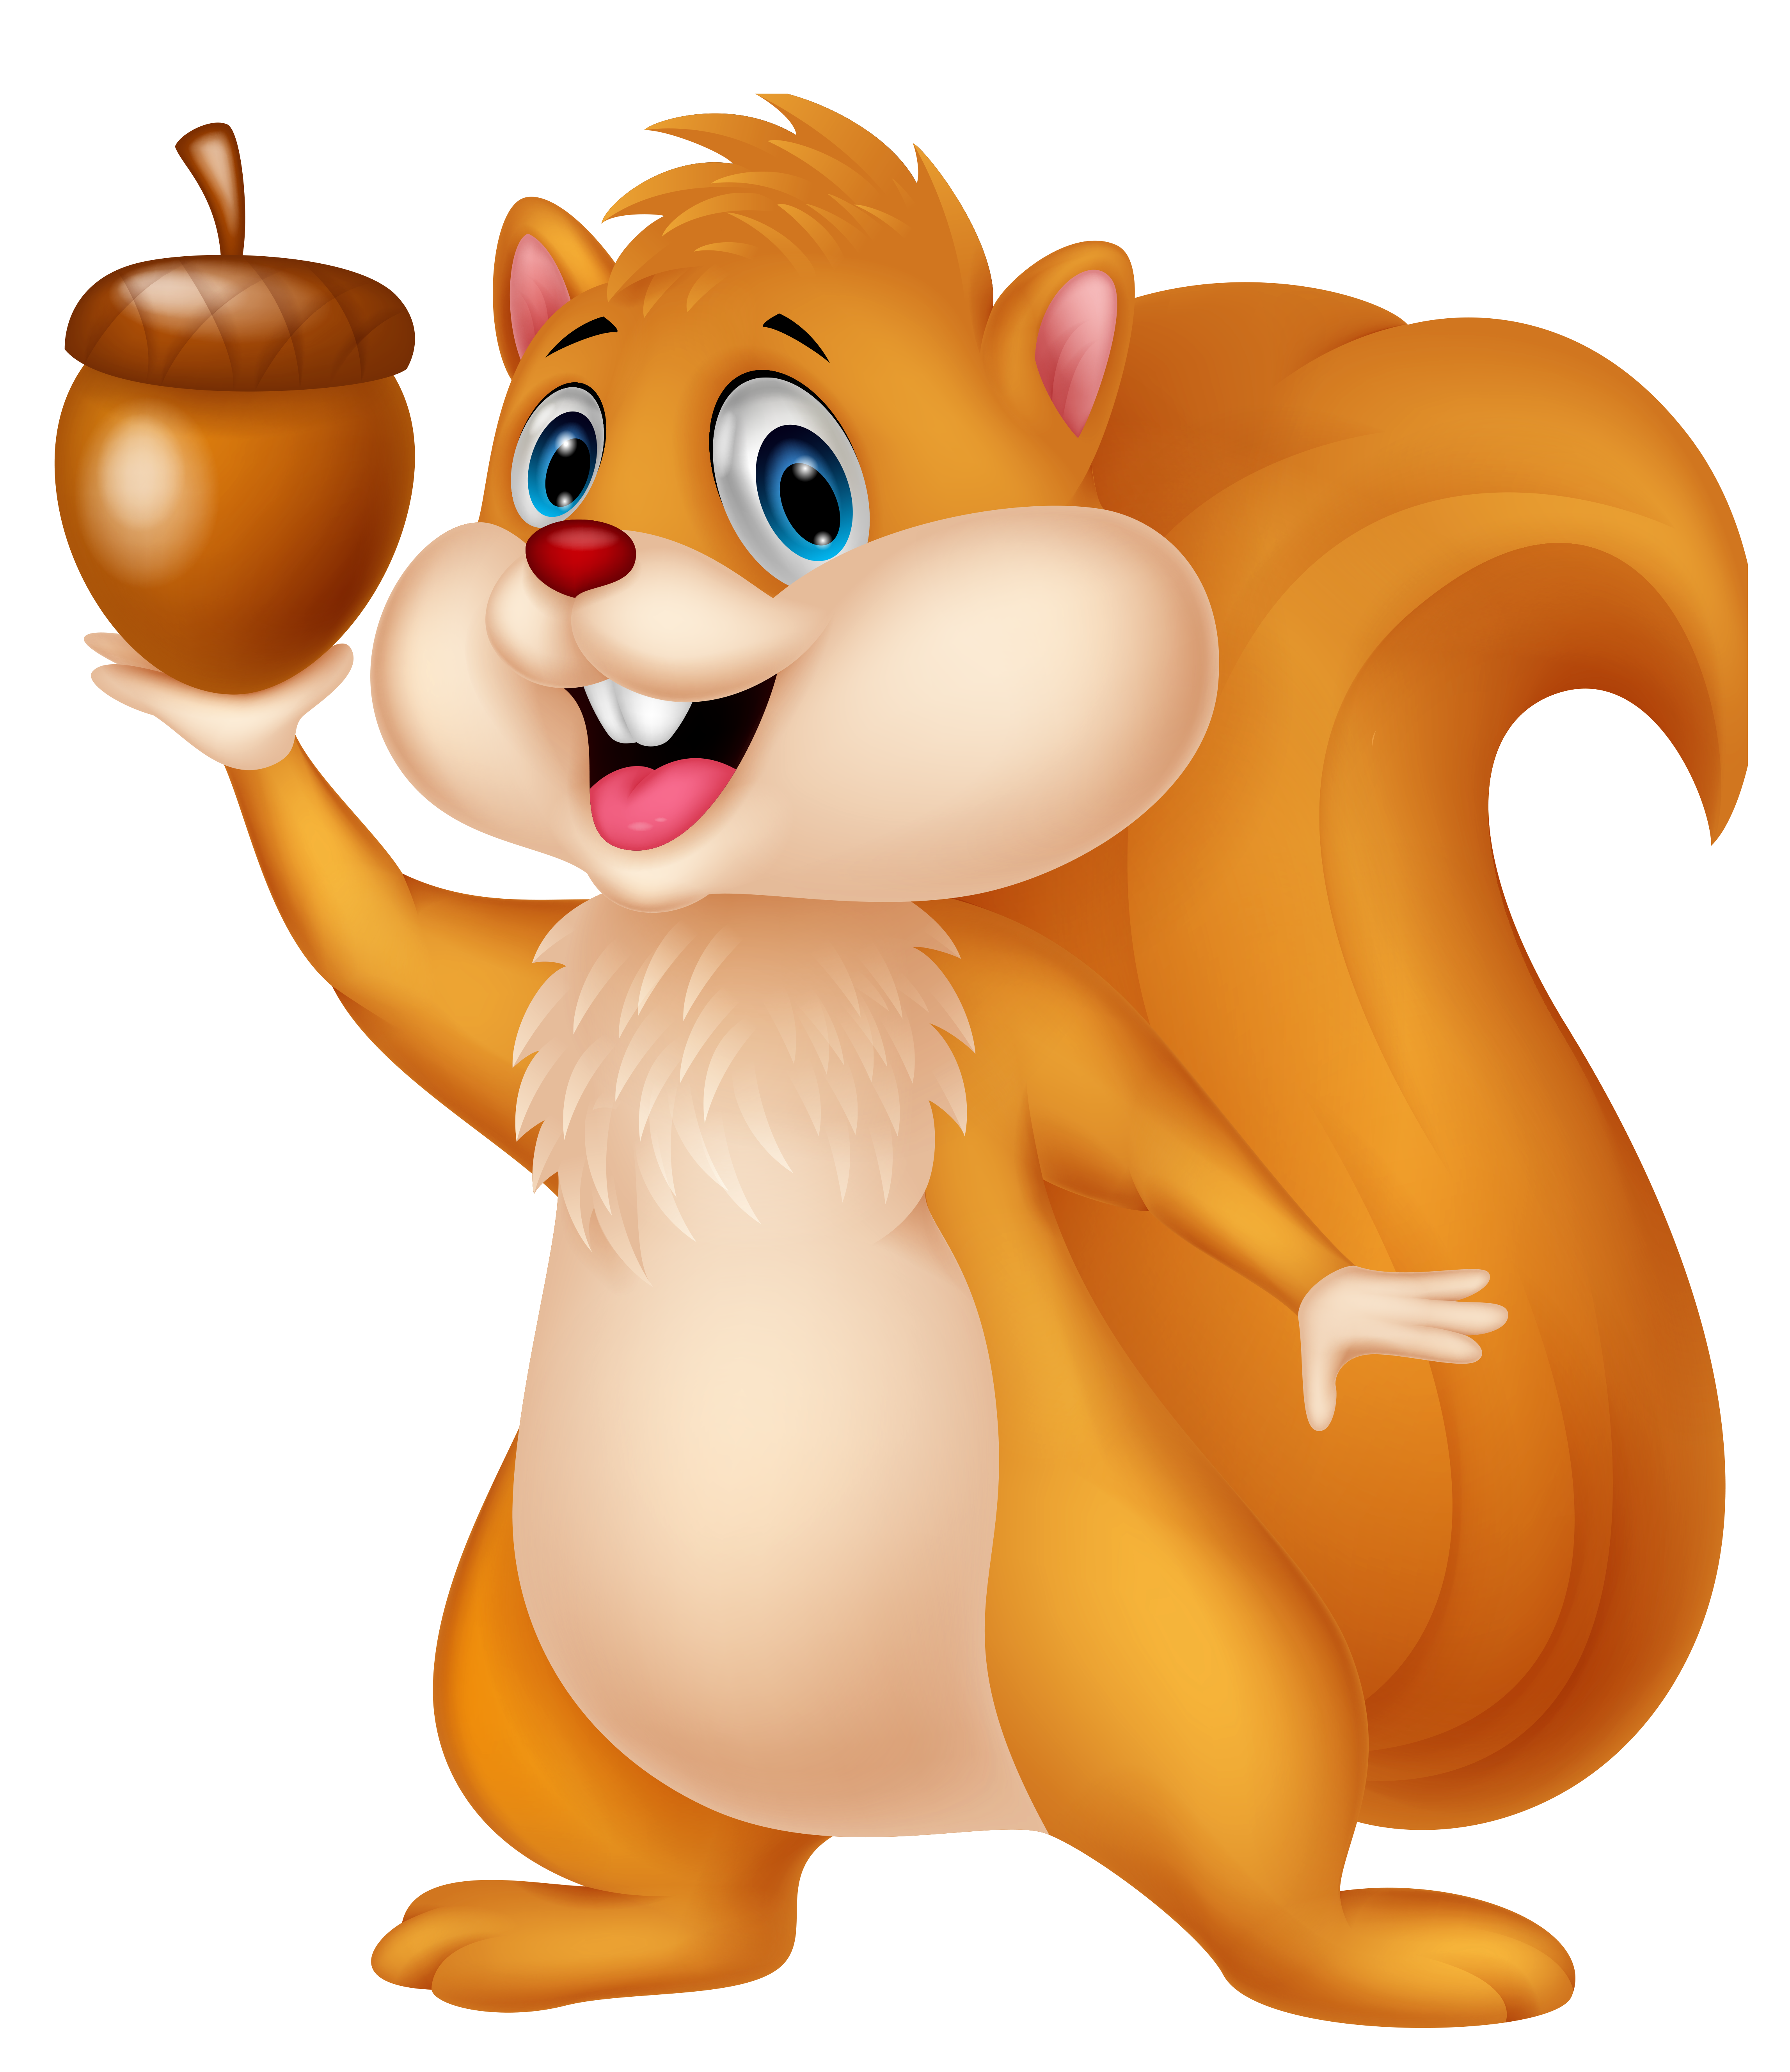 Thanksgiving squirrel clipart svg freeuse download 28+ Collection of Thanksgiving Squirrel Clipart   High quality, free ... svg freeuse download